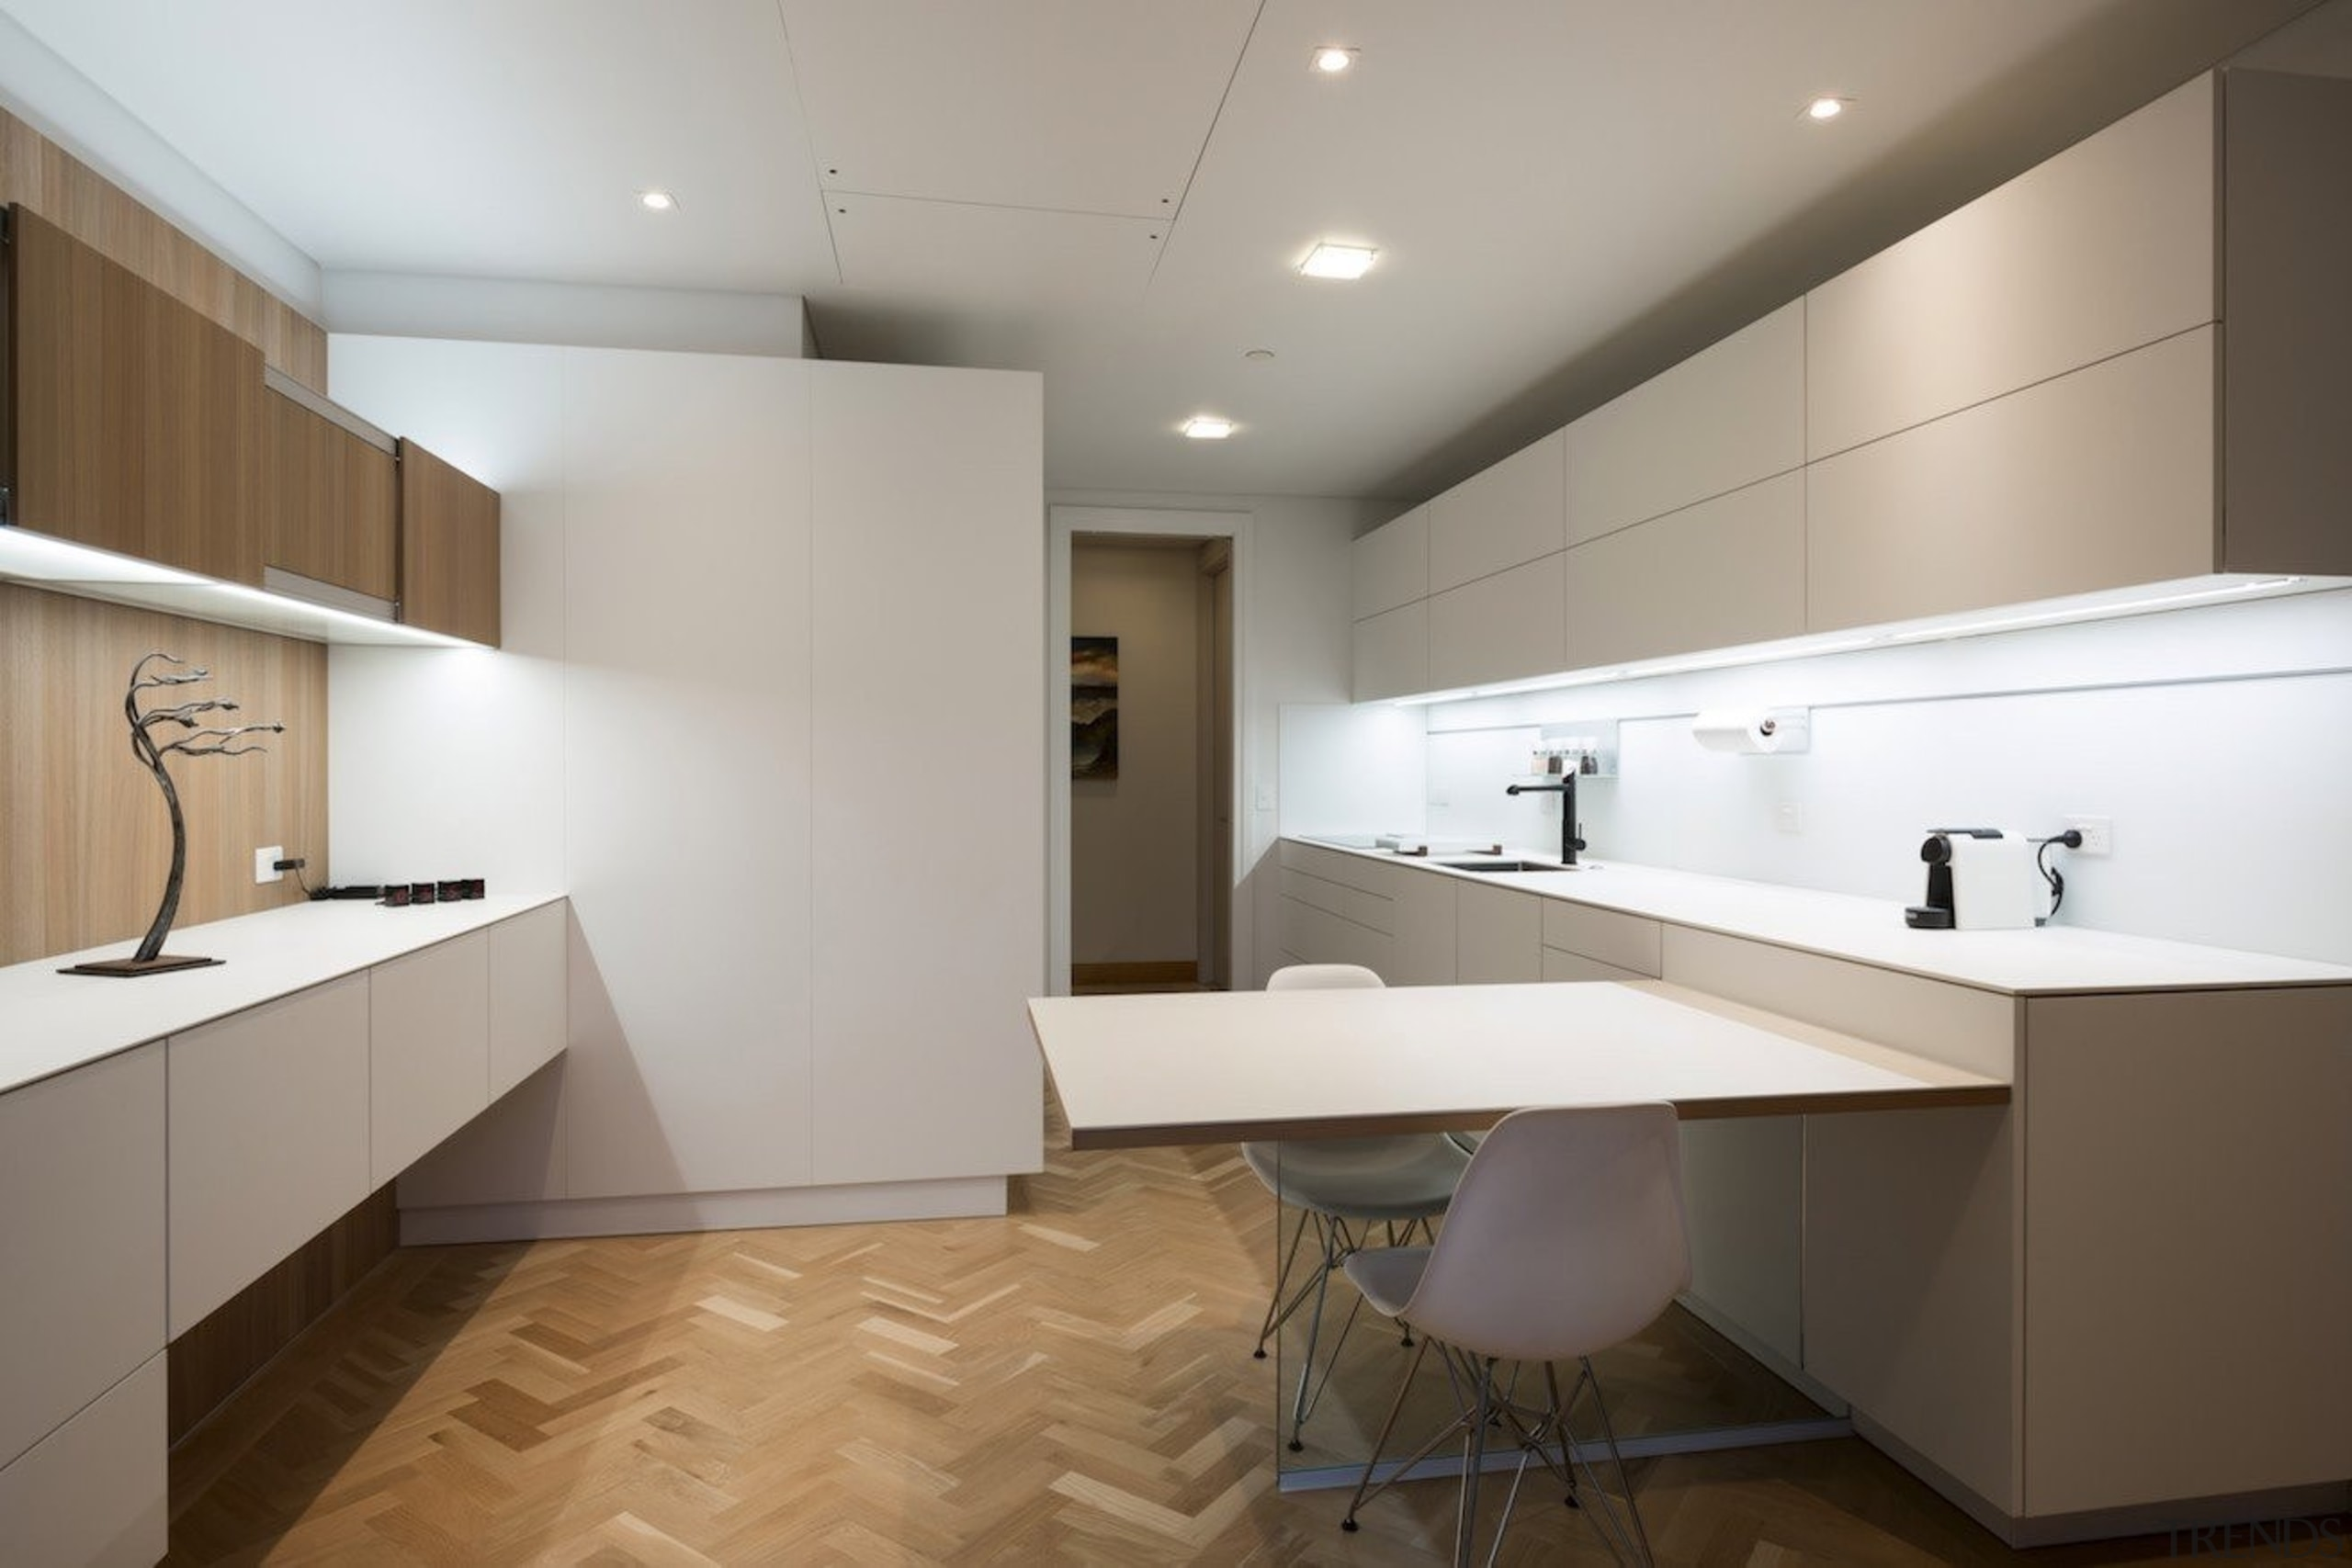 Highly Commended in the Category Imported Kitchen - architecture, bathroom, cabinetry, ceiling, countertop, floor, flooring, interior design, kitchen, real estate, room, sink, tile, wood flooring, gray